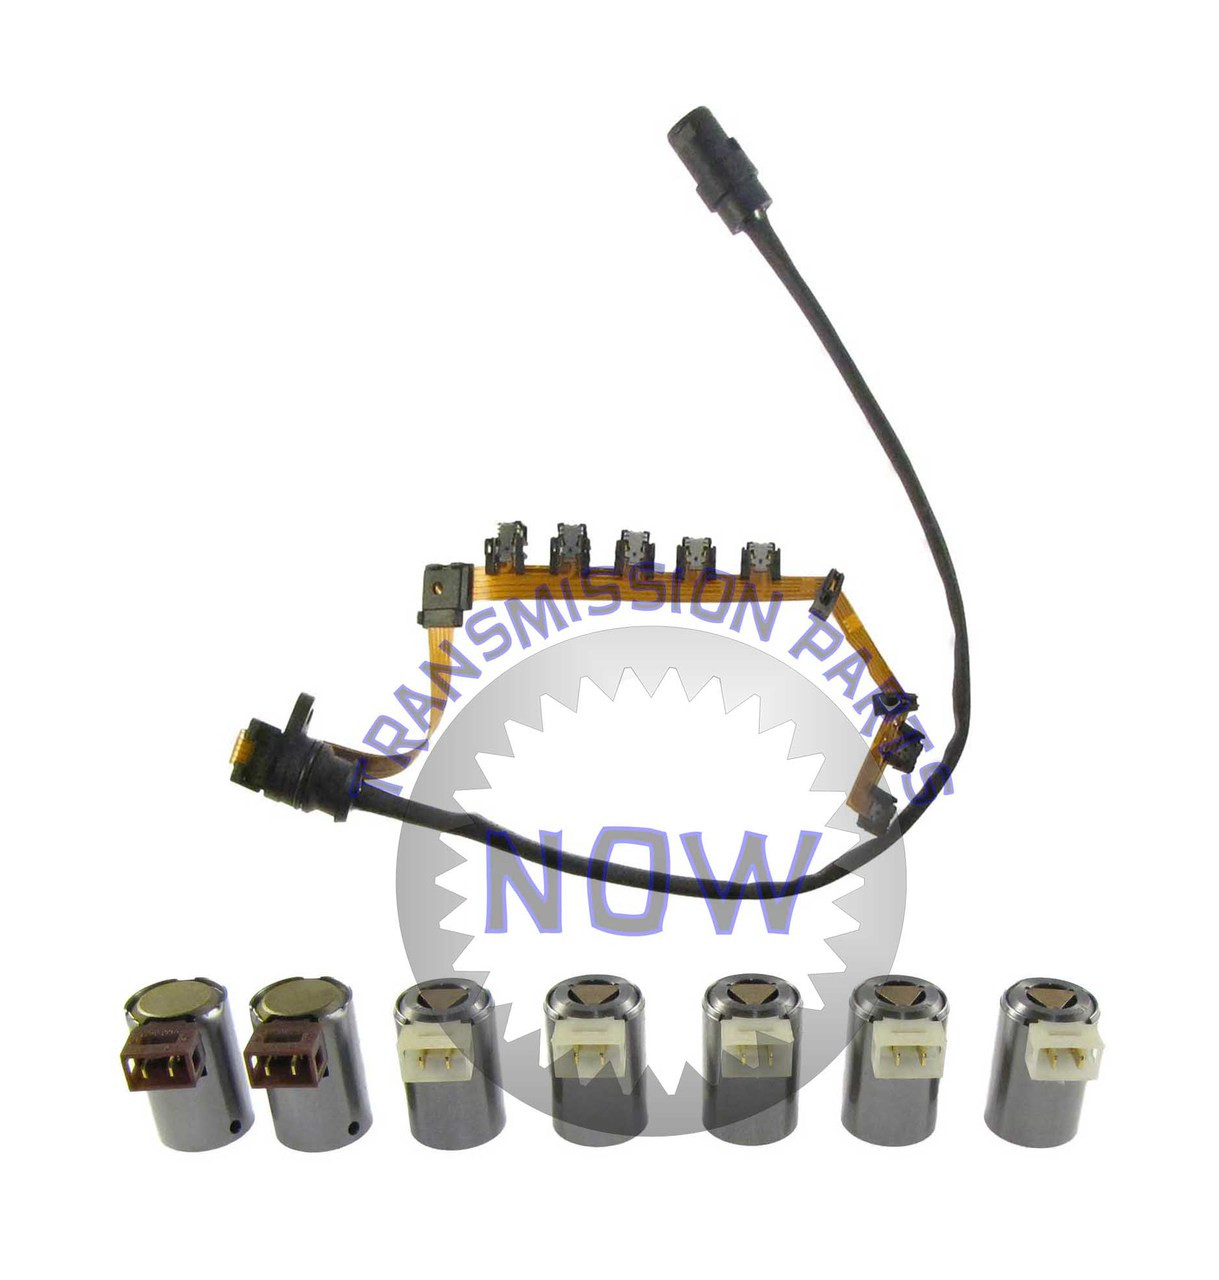 OE Type Wiring Harness and 7 Piece Solenoid Set - Transmission Parts  M Wiring Harness Tool on safety harness tools, wiring hand tools, valve tools,